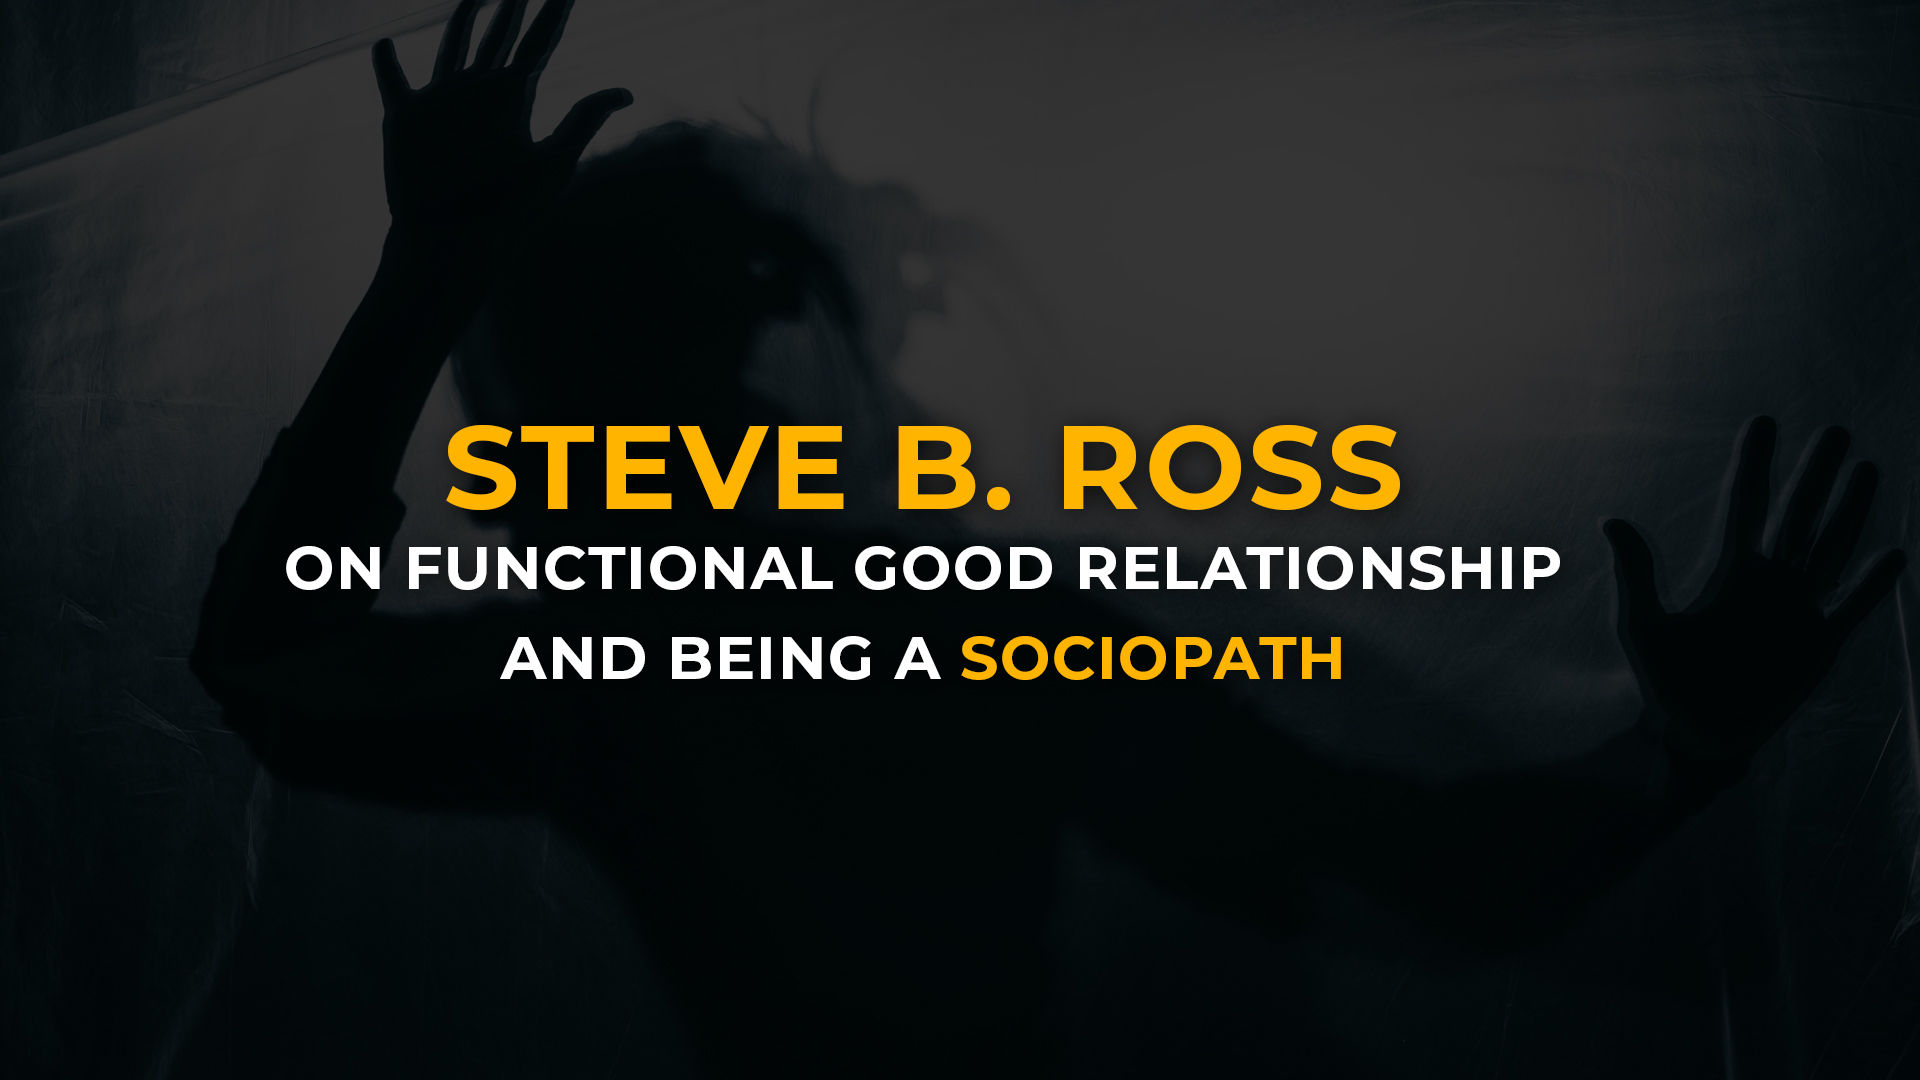 Steve Ross on Functional Good Relationship and Being a Sociopath banner